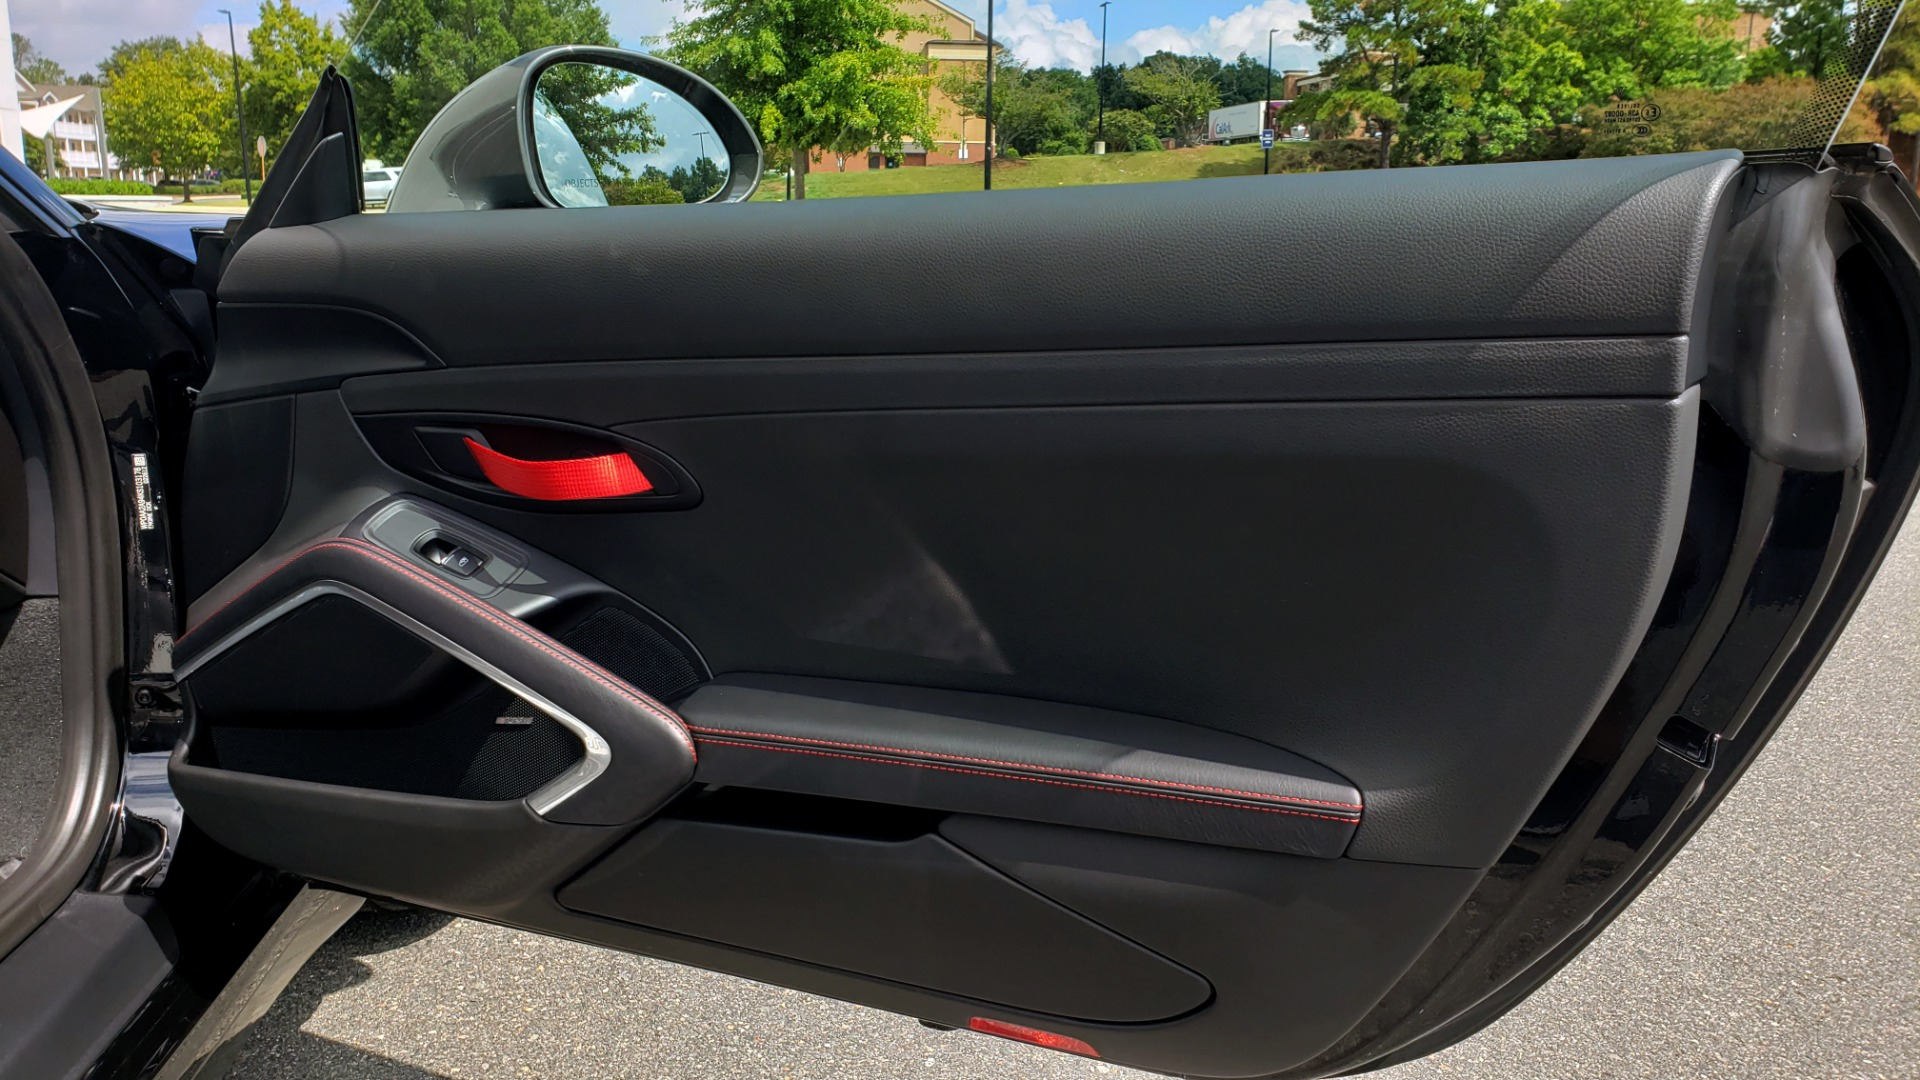 Used 2019 Porsche 911 CARRERA T / 3.0L H6 / MANUAL / PREMIUM / NAV / BOSE / SUNROOF / REARVIEW for sale $117,000 at Formula Imports in Charlotte NC 28227 35